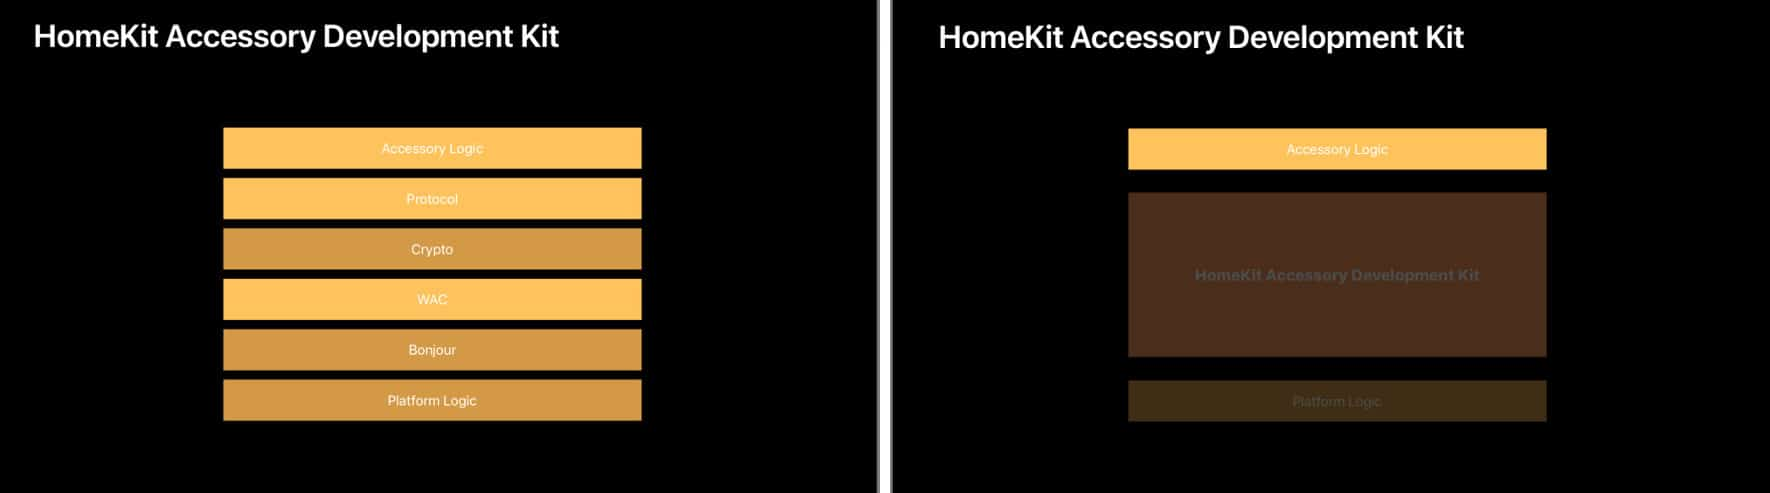 HomeKit Accessory Development Kit